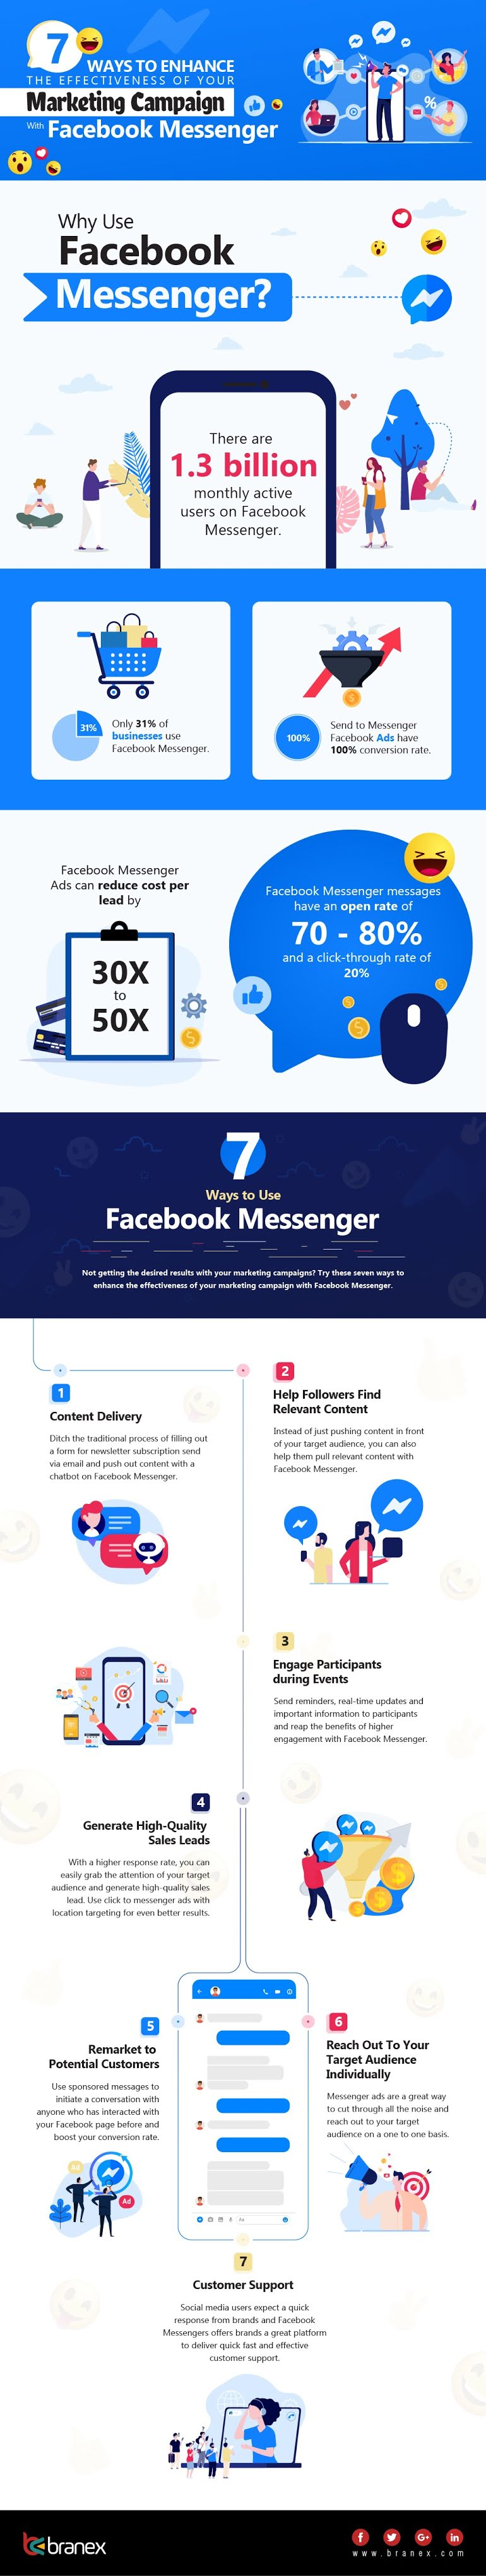 7 Ways To Enhance The Effectiveness Of Your Marketing Campaign With Facebook Messenger #infographic